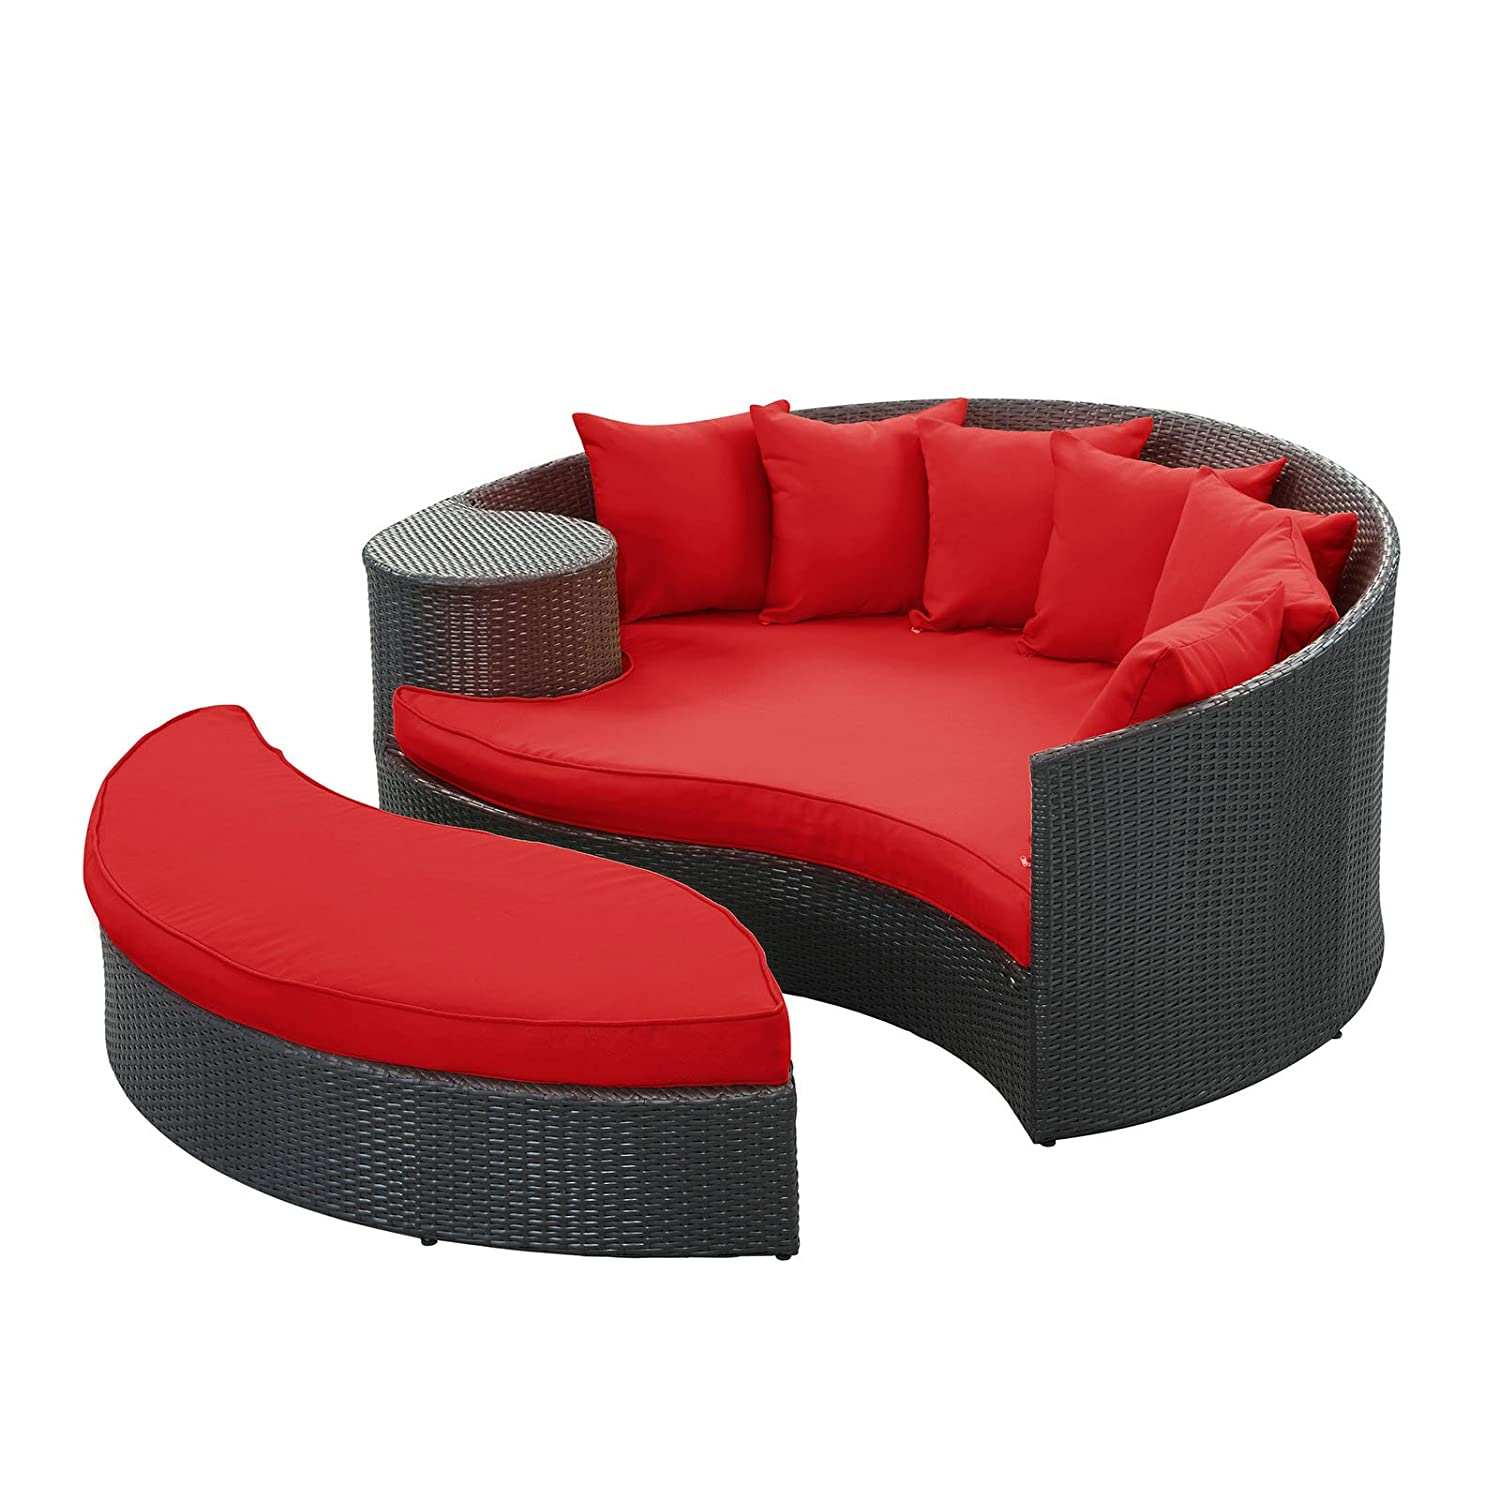 Red Cushions Beautiful Patio Sofa Furniture Round Daybed